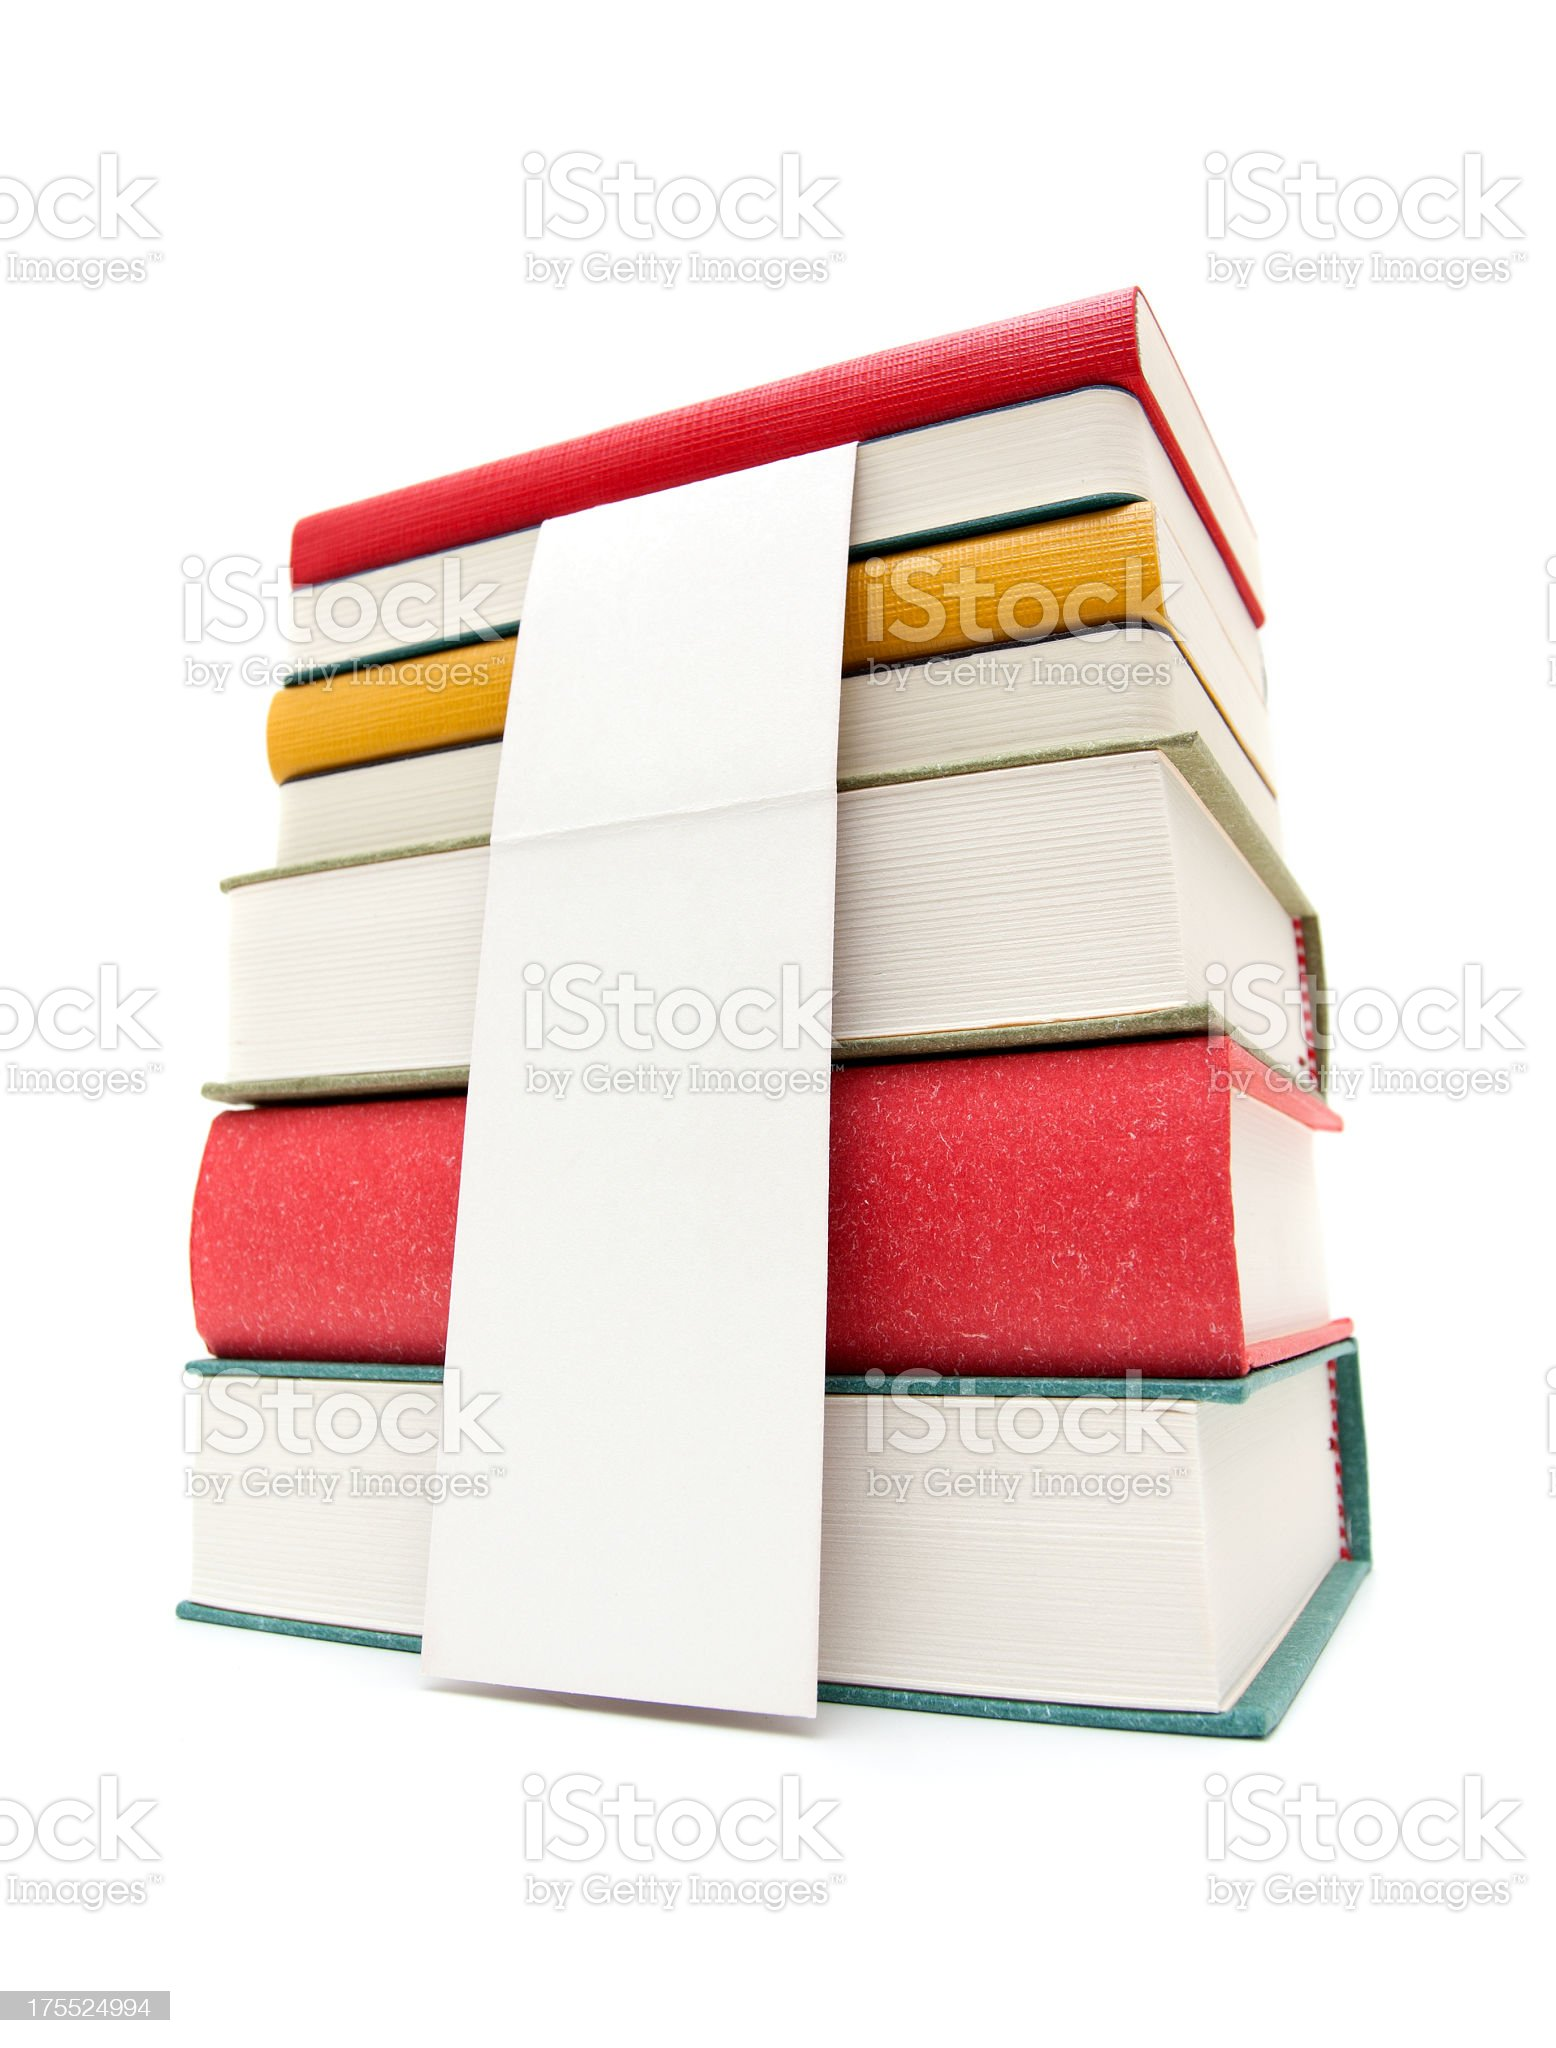 Pile of books isolated on white background royalty-free stock photo